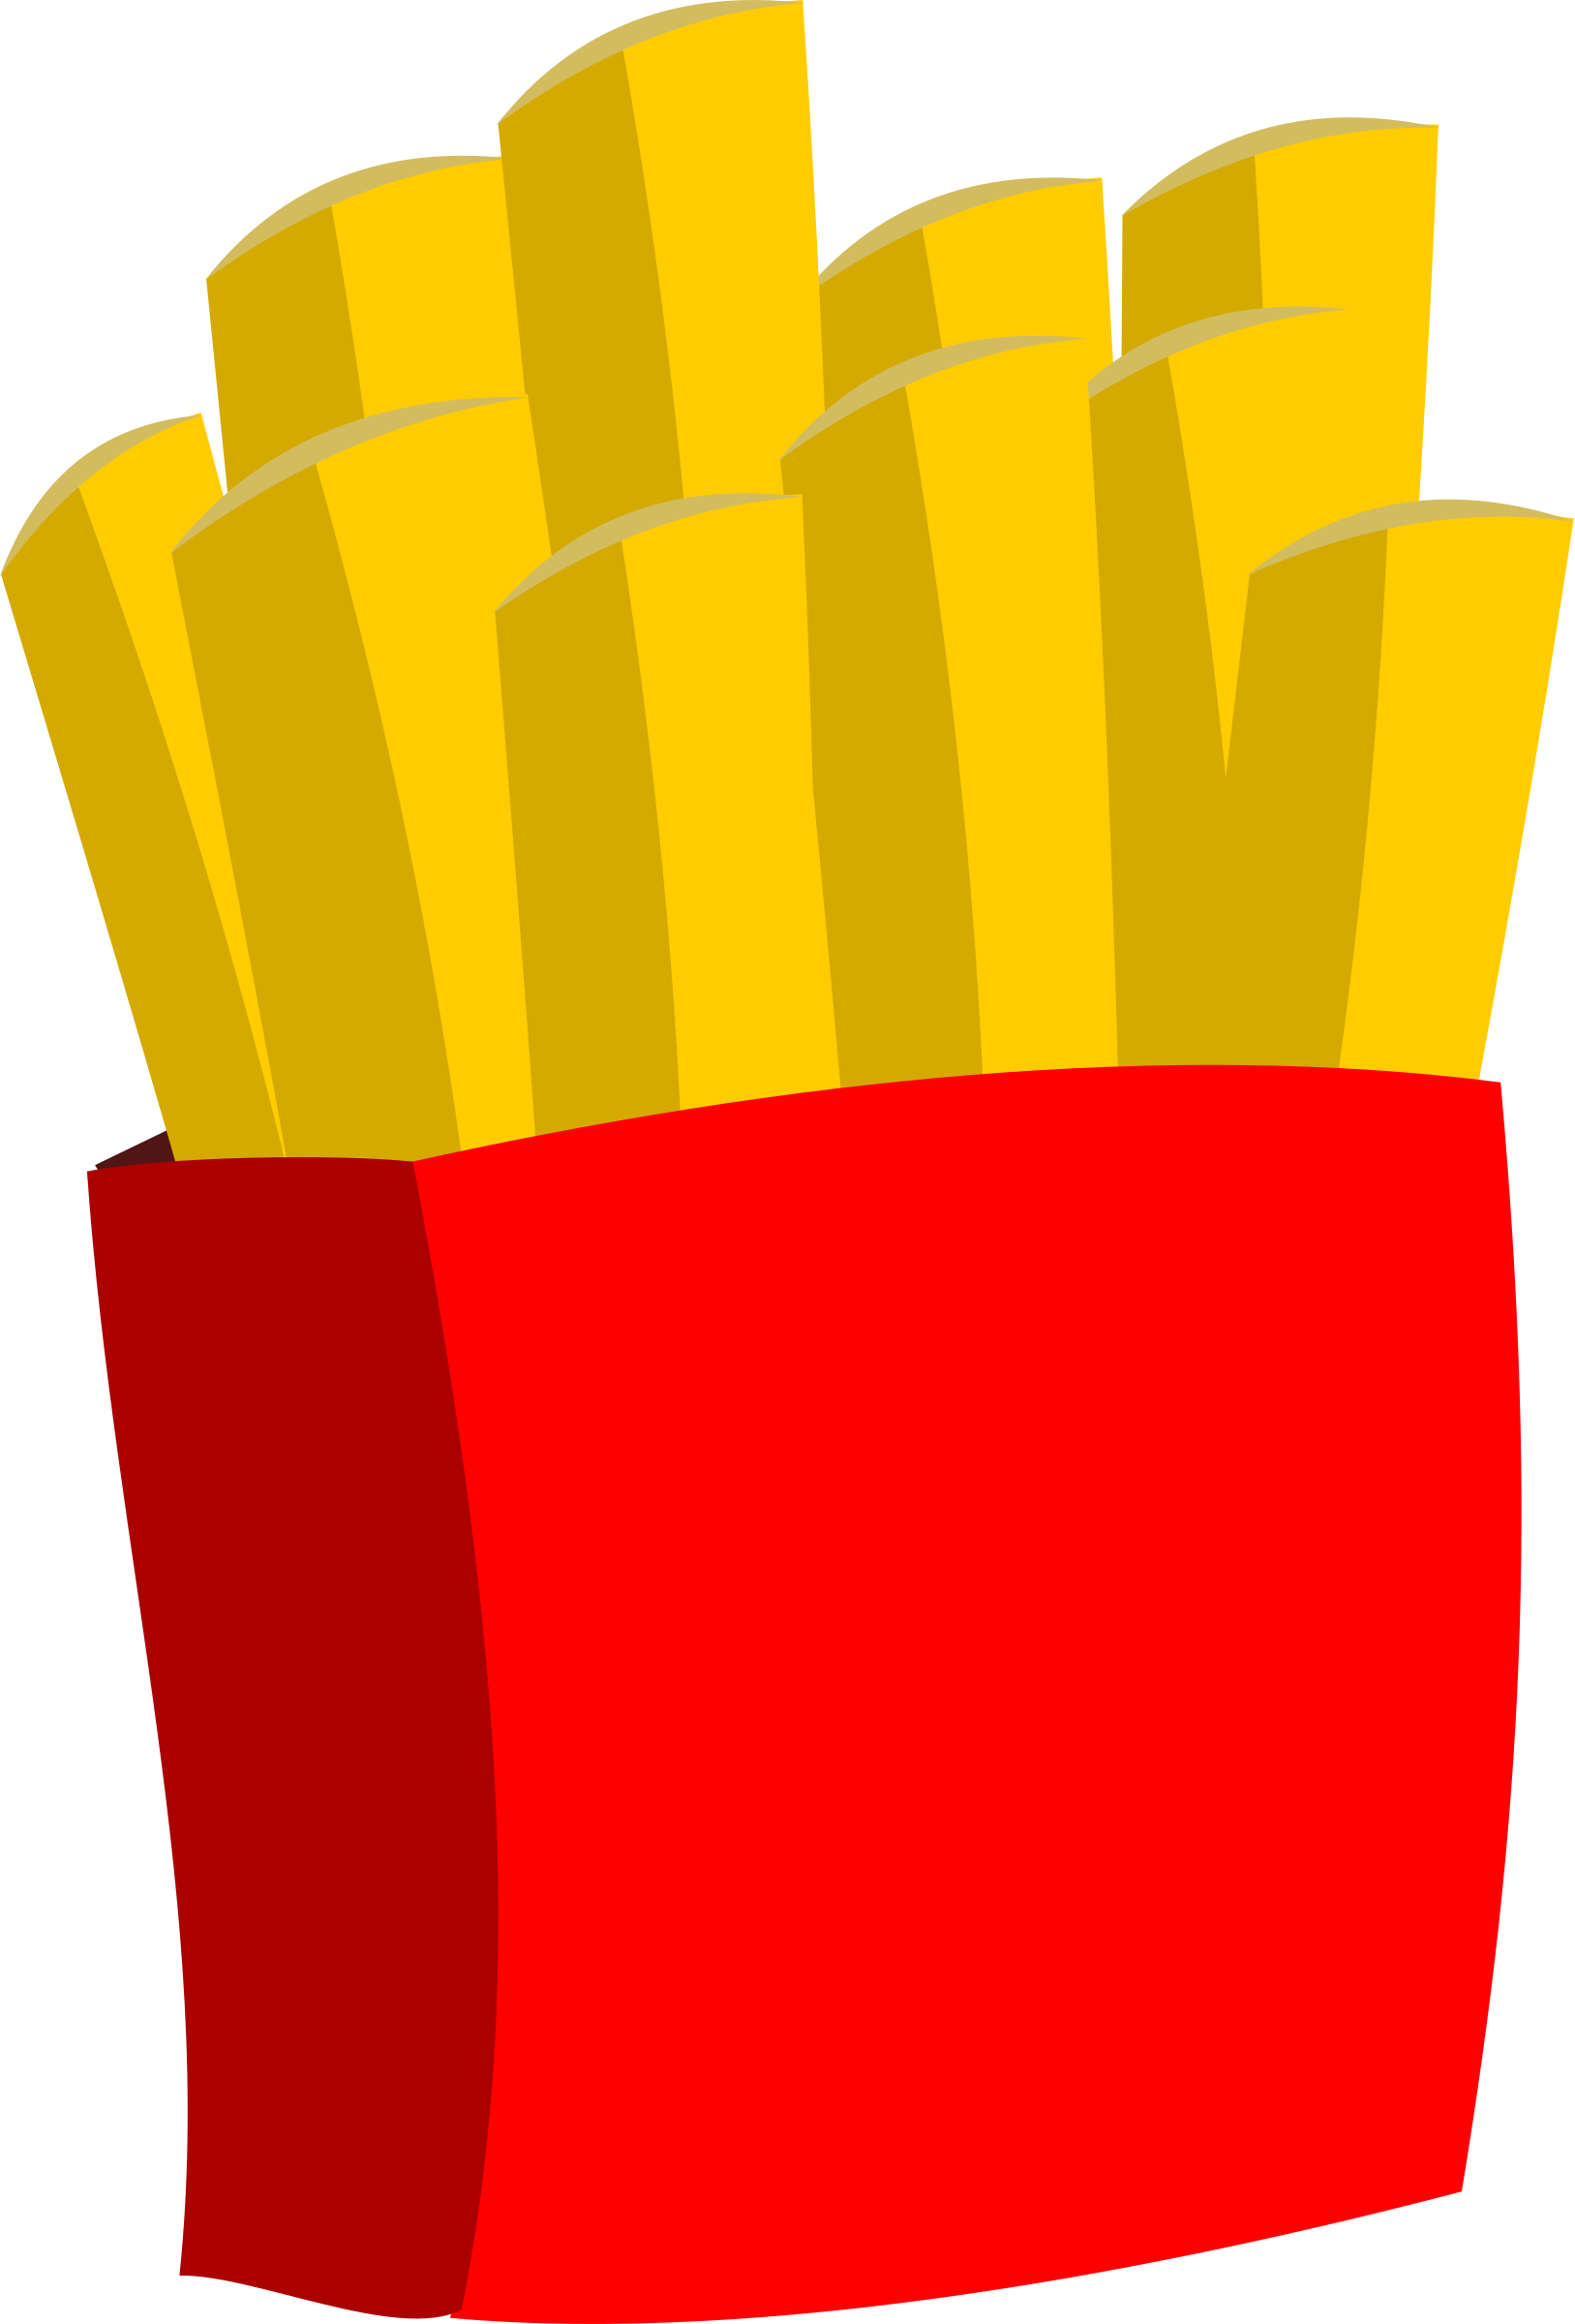 Chips clipart. Hot big image png